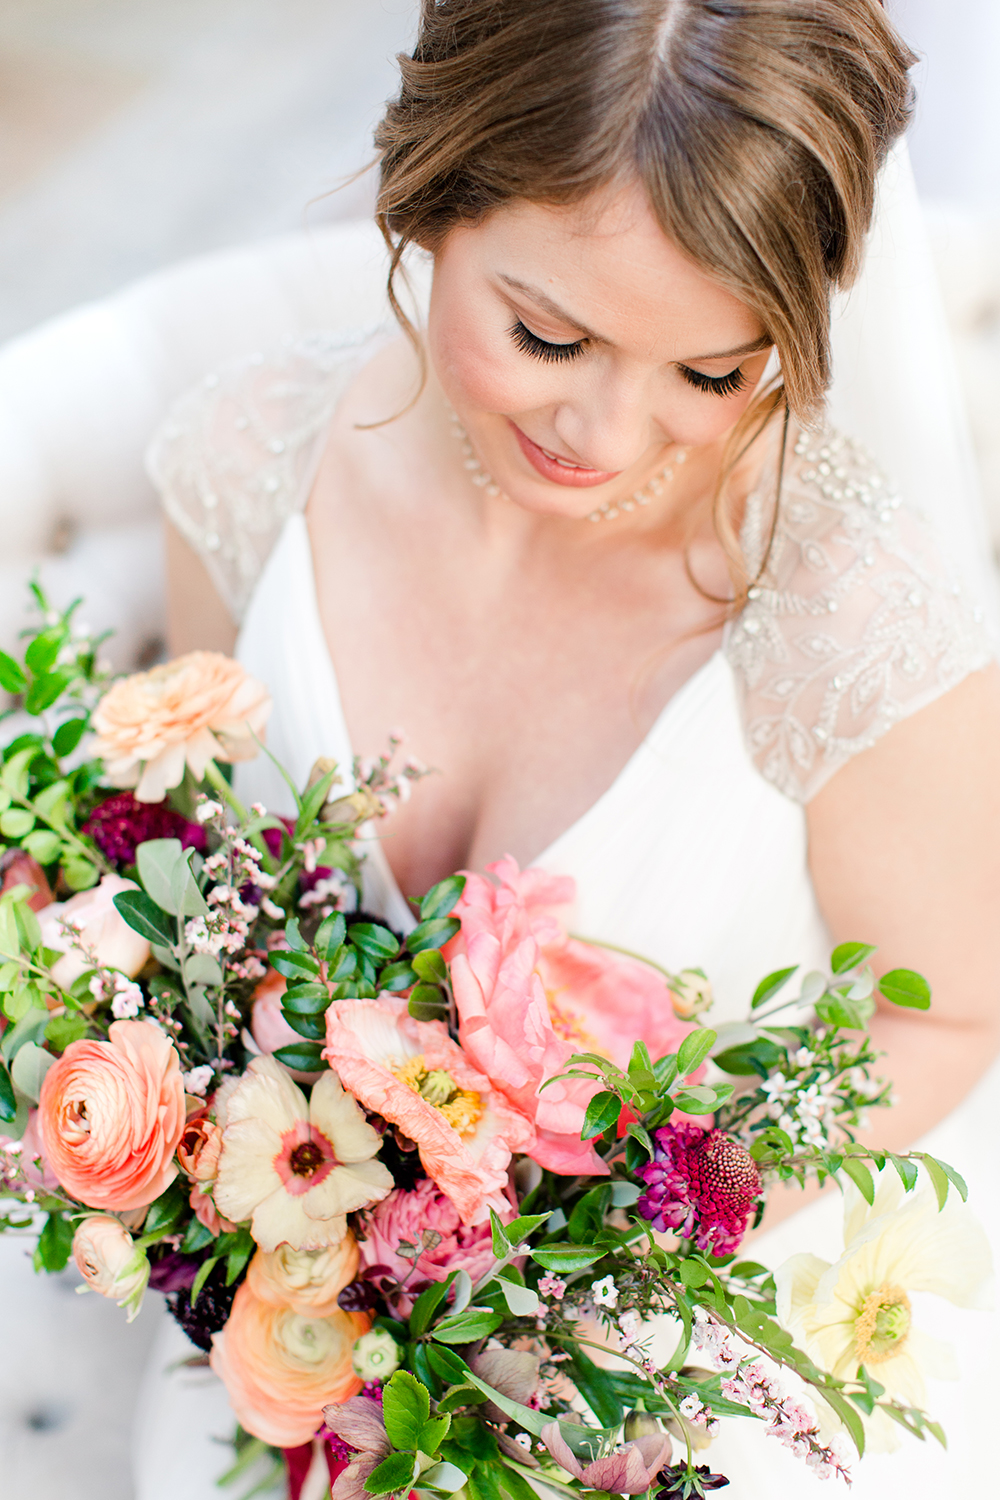 wedding beauty - photo by Lauren Lee Photography http://ruffledblog.com/modern-grecian-inspired-wedding-ideas